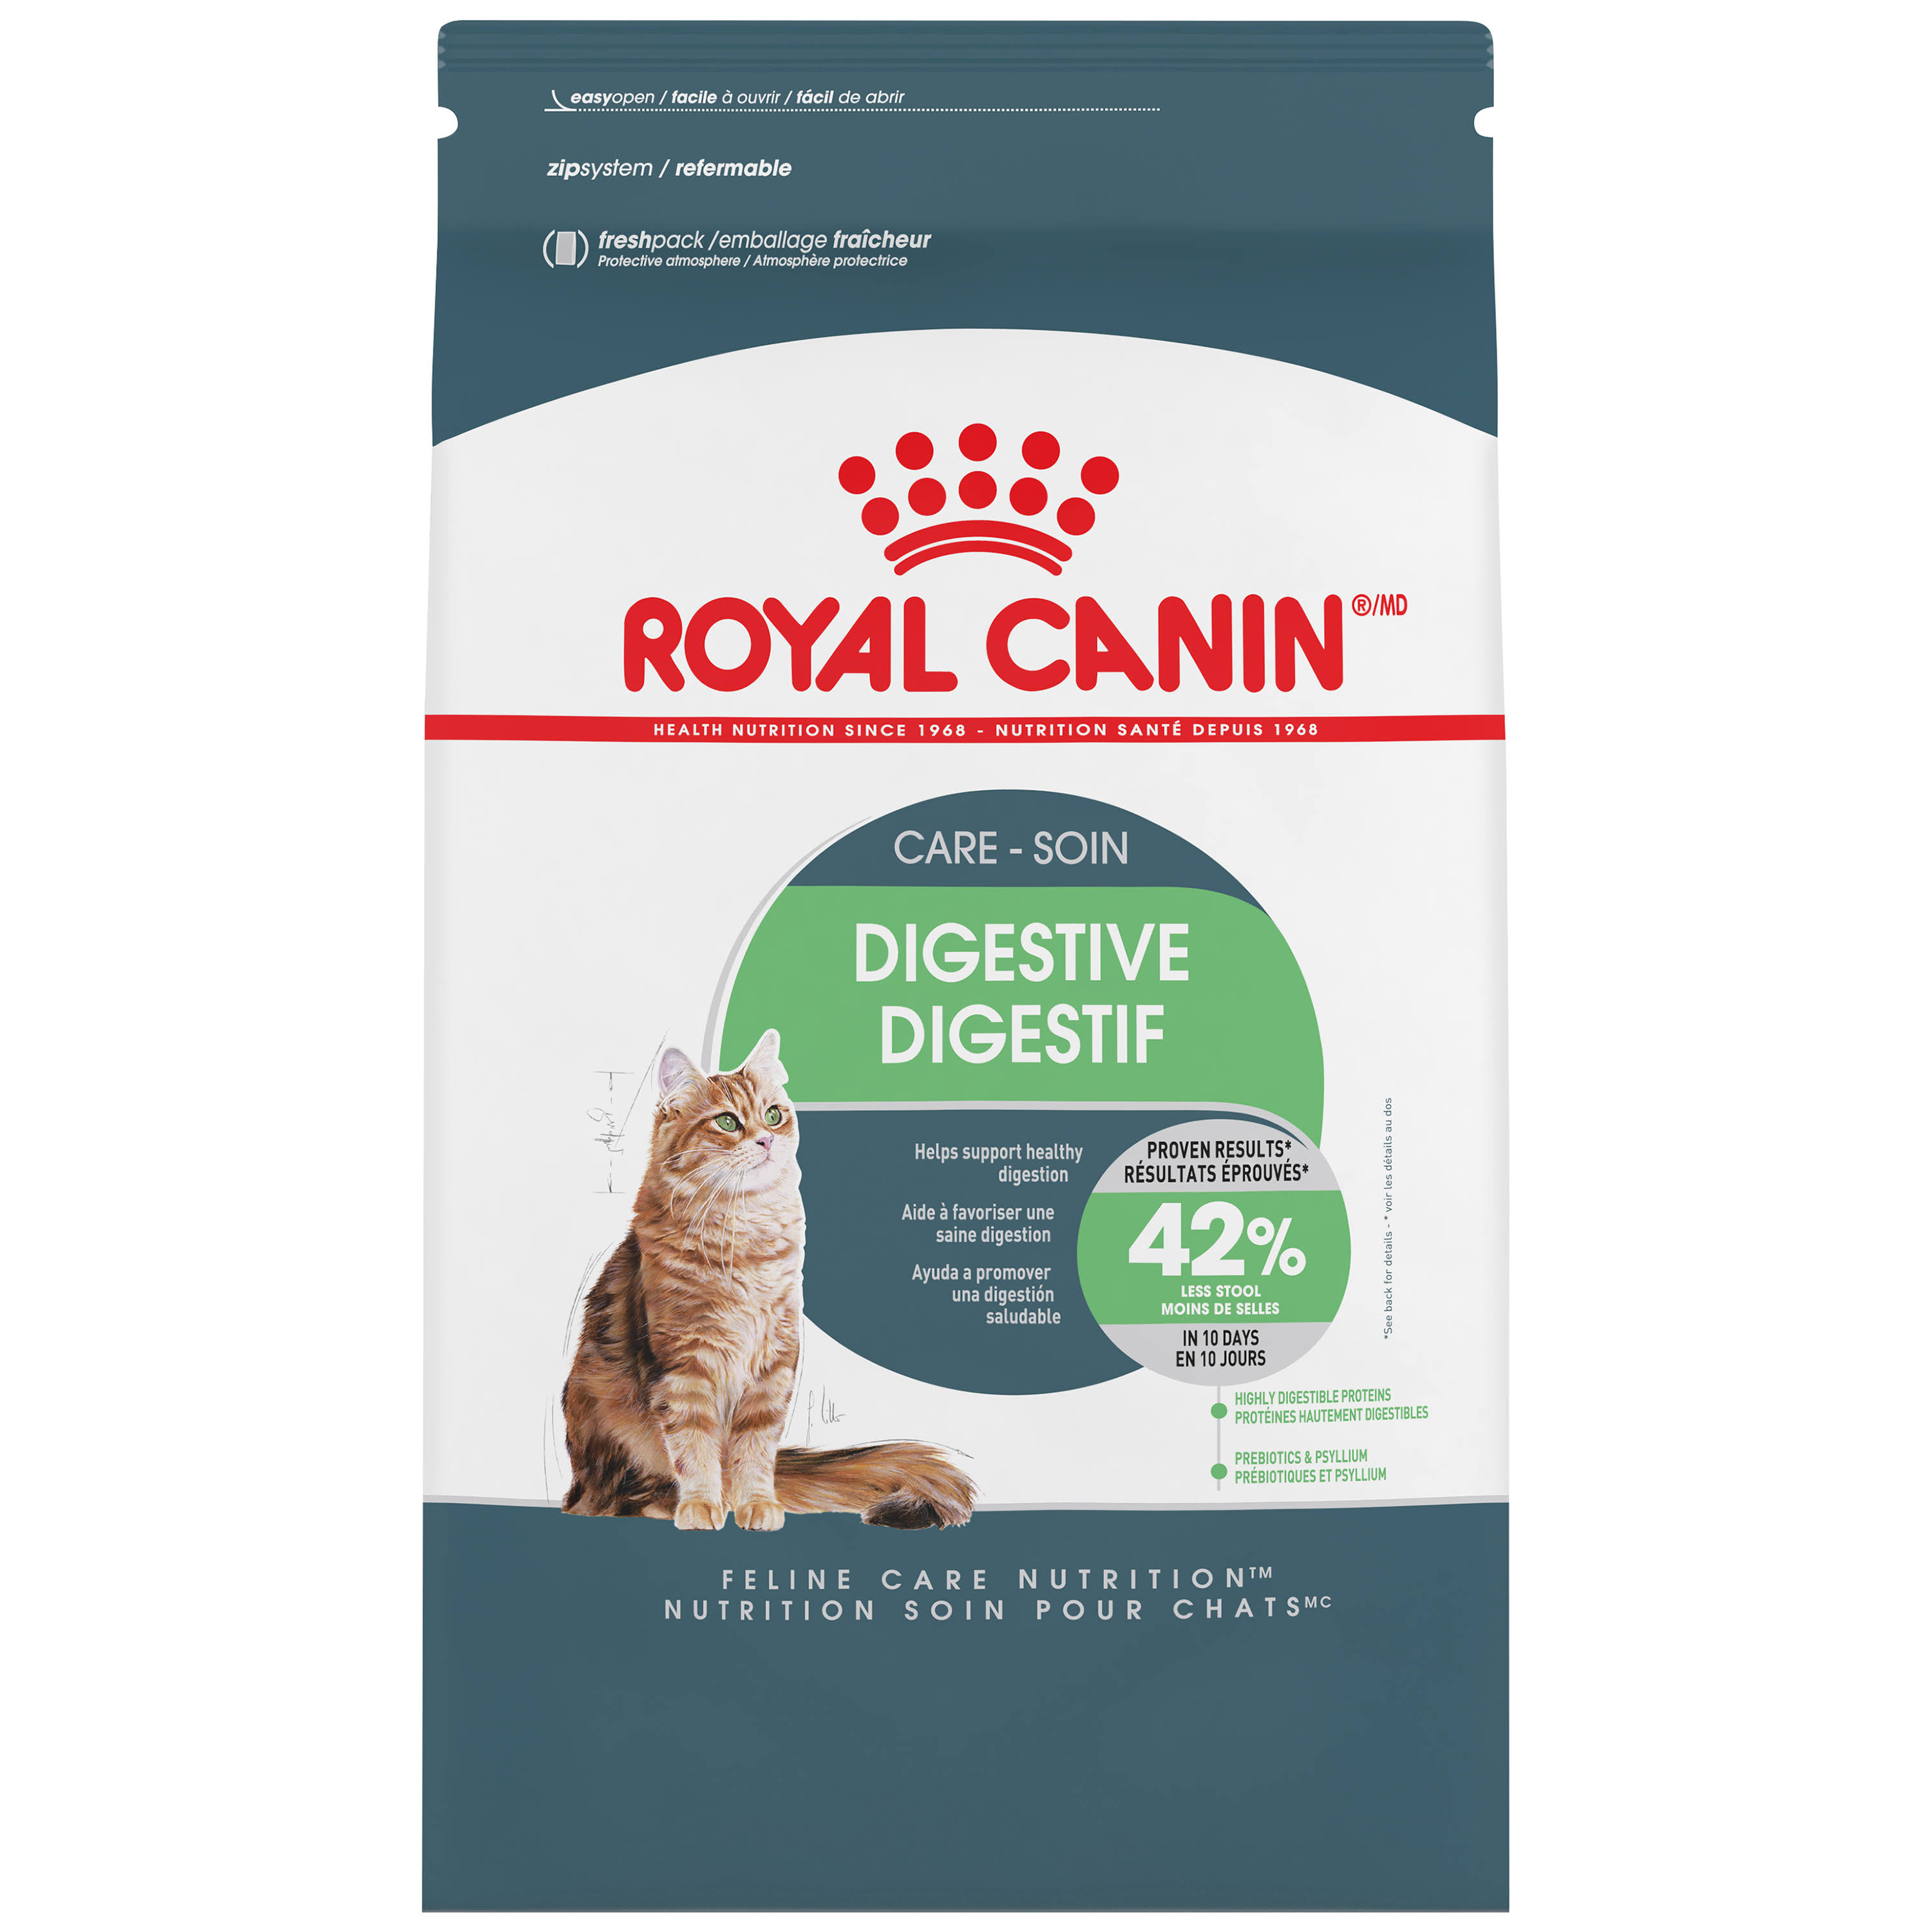 Royal Canin Adult Cat Dry Kibble Food - Digestive Care and Nutrition, 6lbs